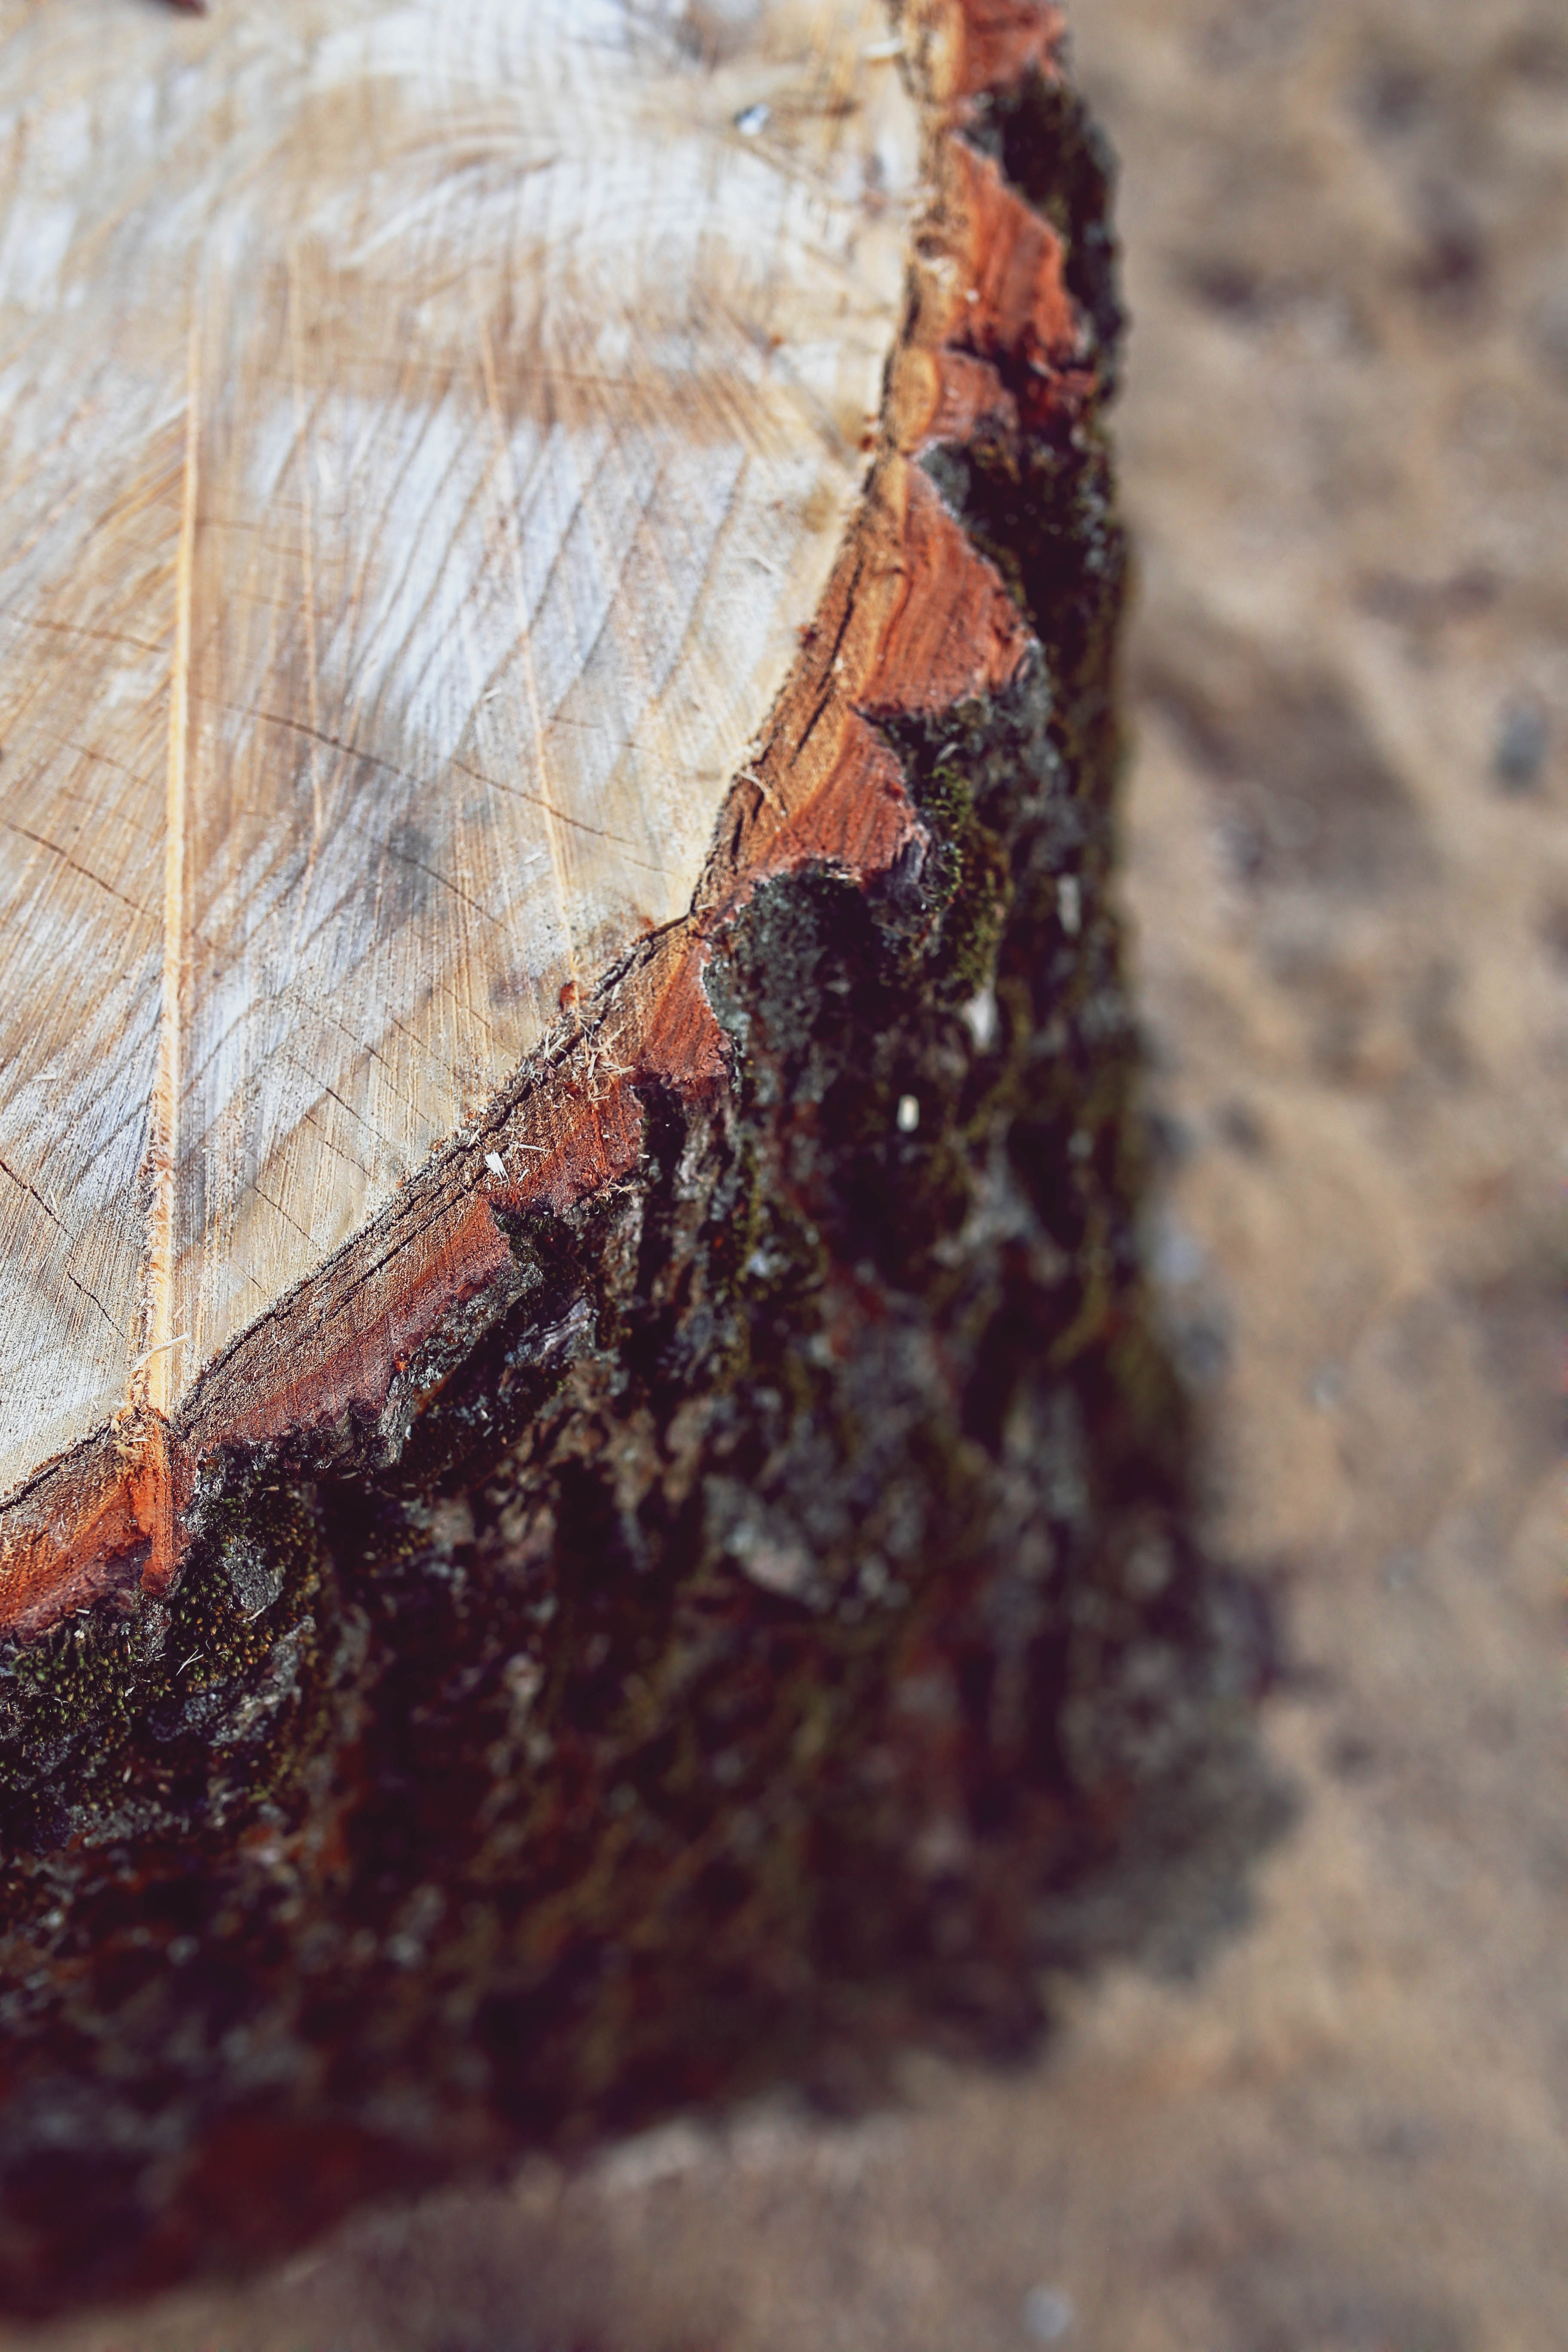 Trunk / bole, Abstract, Rock, Wood, Trunk, HQ Photo